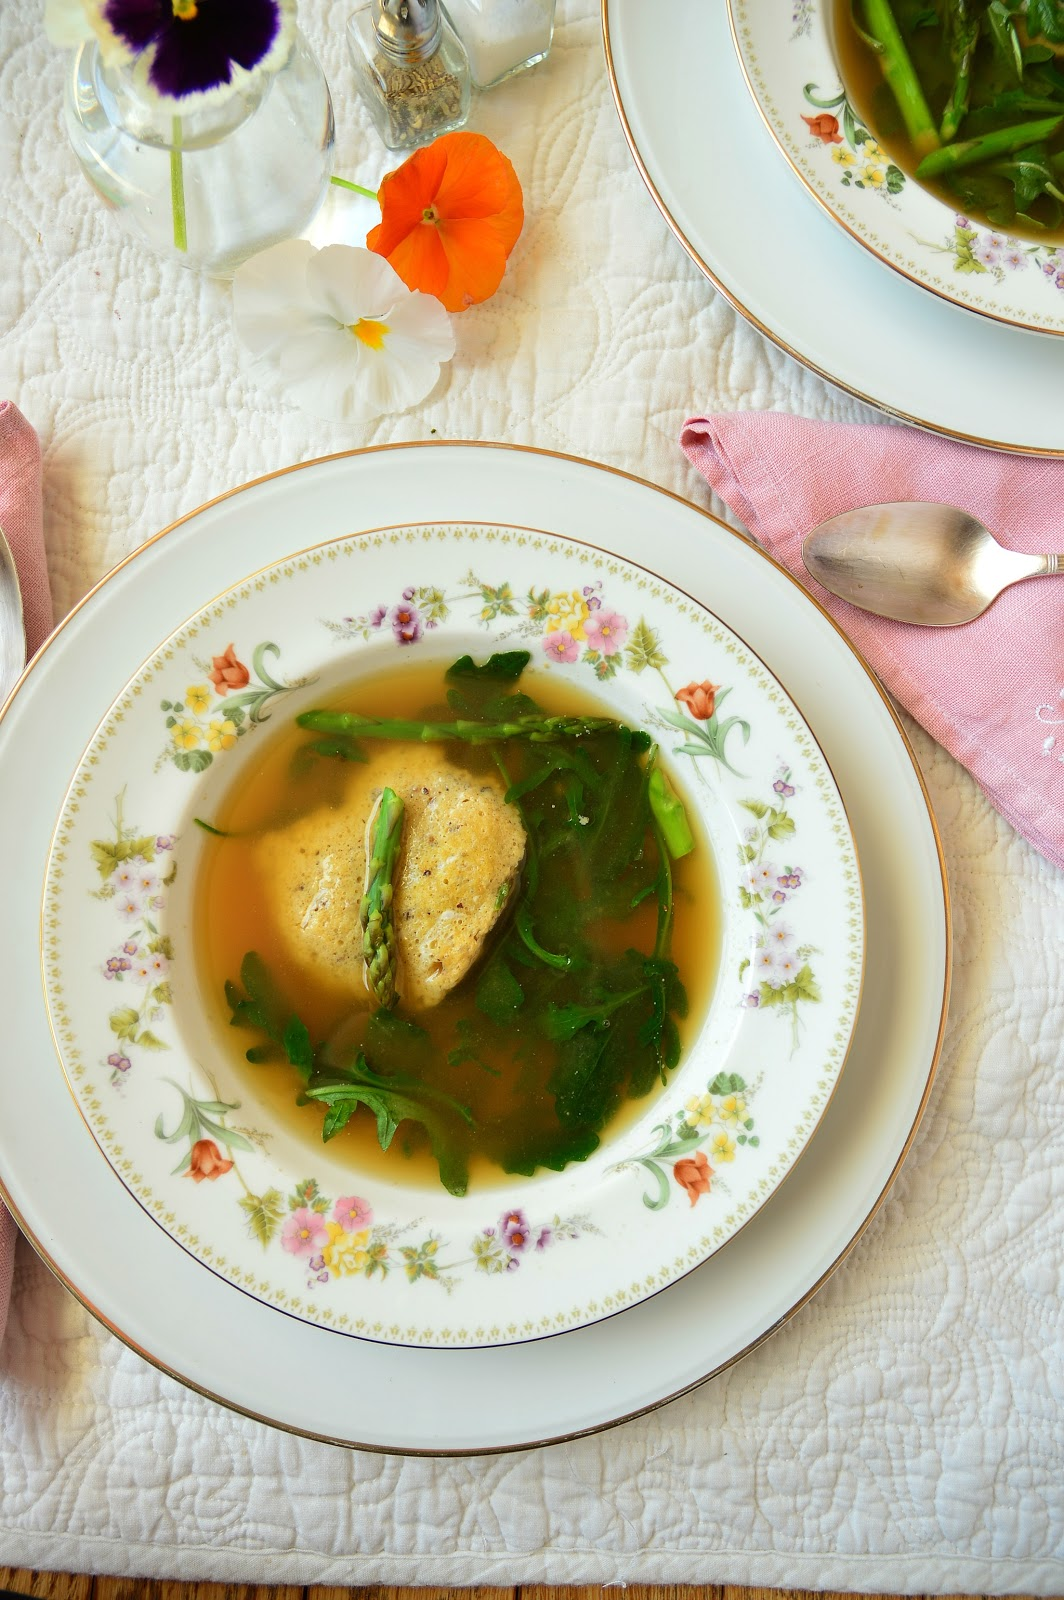 This springtime matzo egg drop soup is perfect. It solves the matzo ball dilemma of sinkers or floaters by using just matzo meal and eggs that are dropped by spoonfuls into the hot broth. This forms creative little matzo discs that I just love! #matzoballs #chickensoup #passoverrecipes www.thisishowicook.com